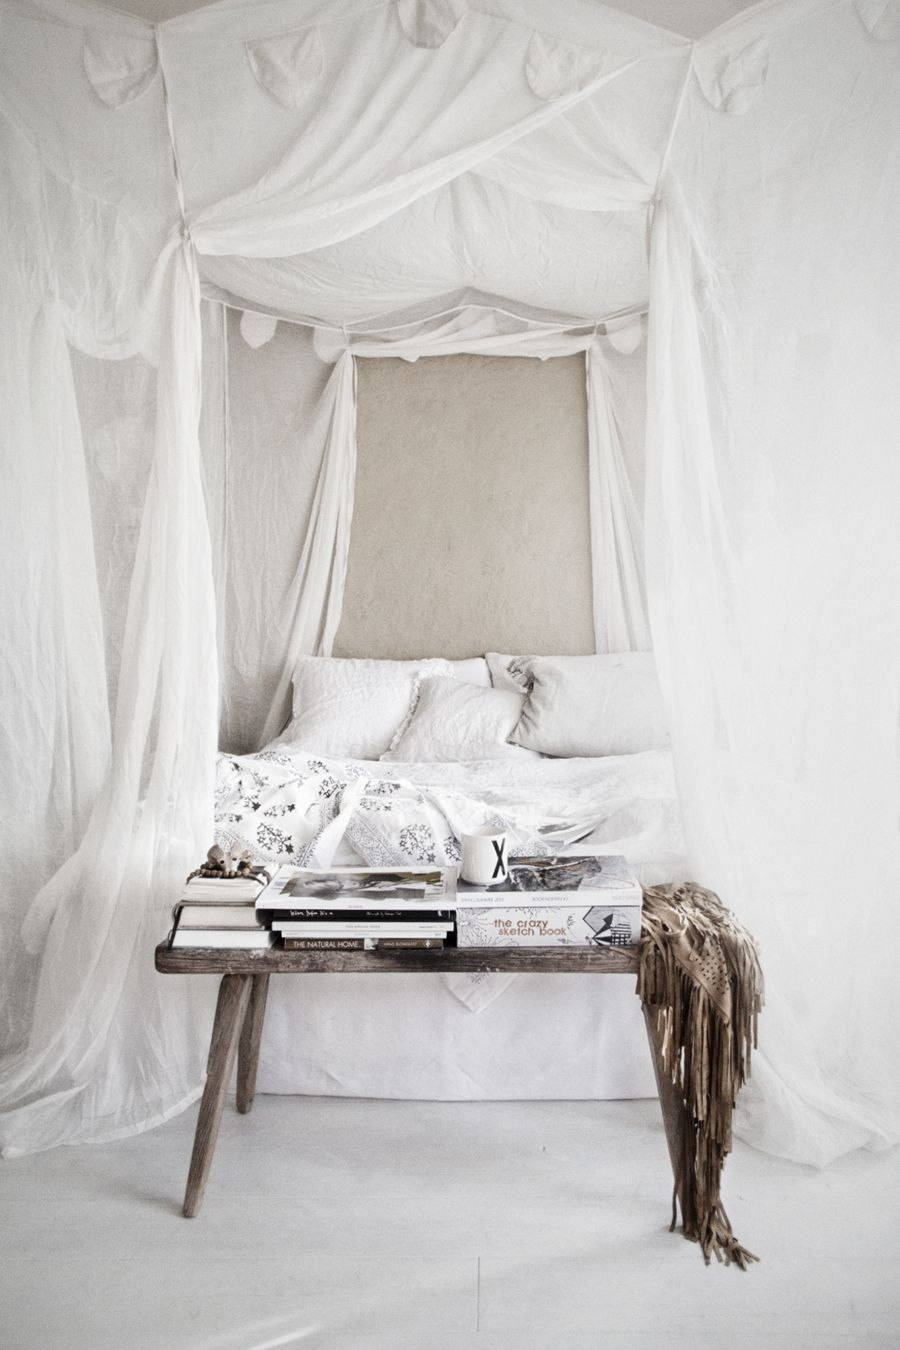 AWAKENINGS | for original & details ➸♡➸ honeypieLIVINGetc | © hannah lemholt photography